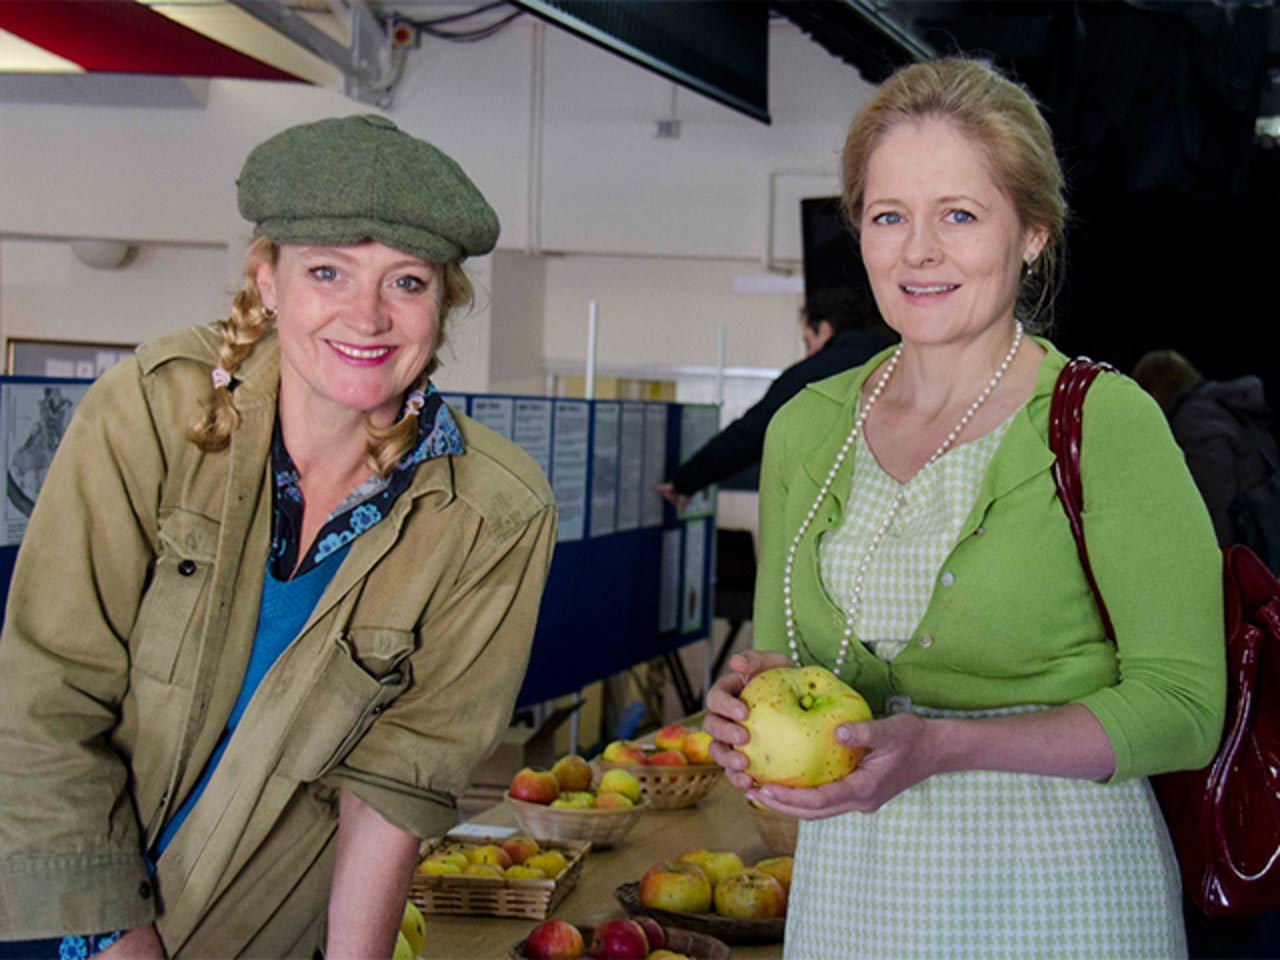 Sir John's daughter, Suzannah, who is helping him with the juice and compote business, pictured here with The Daily Telegraph's Xanthe Clay.